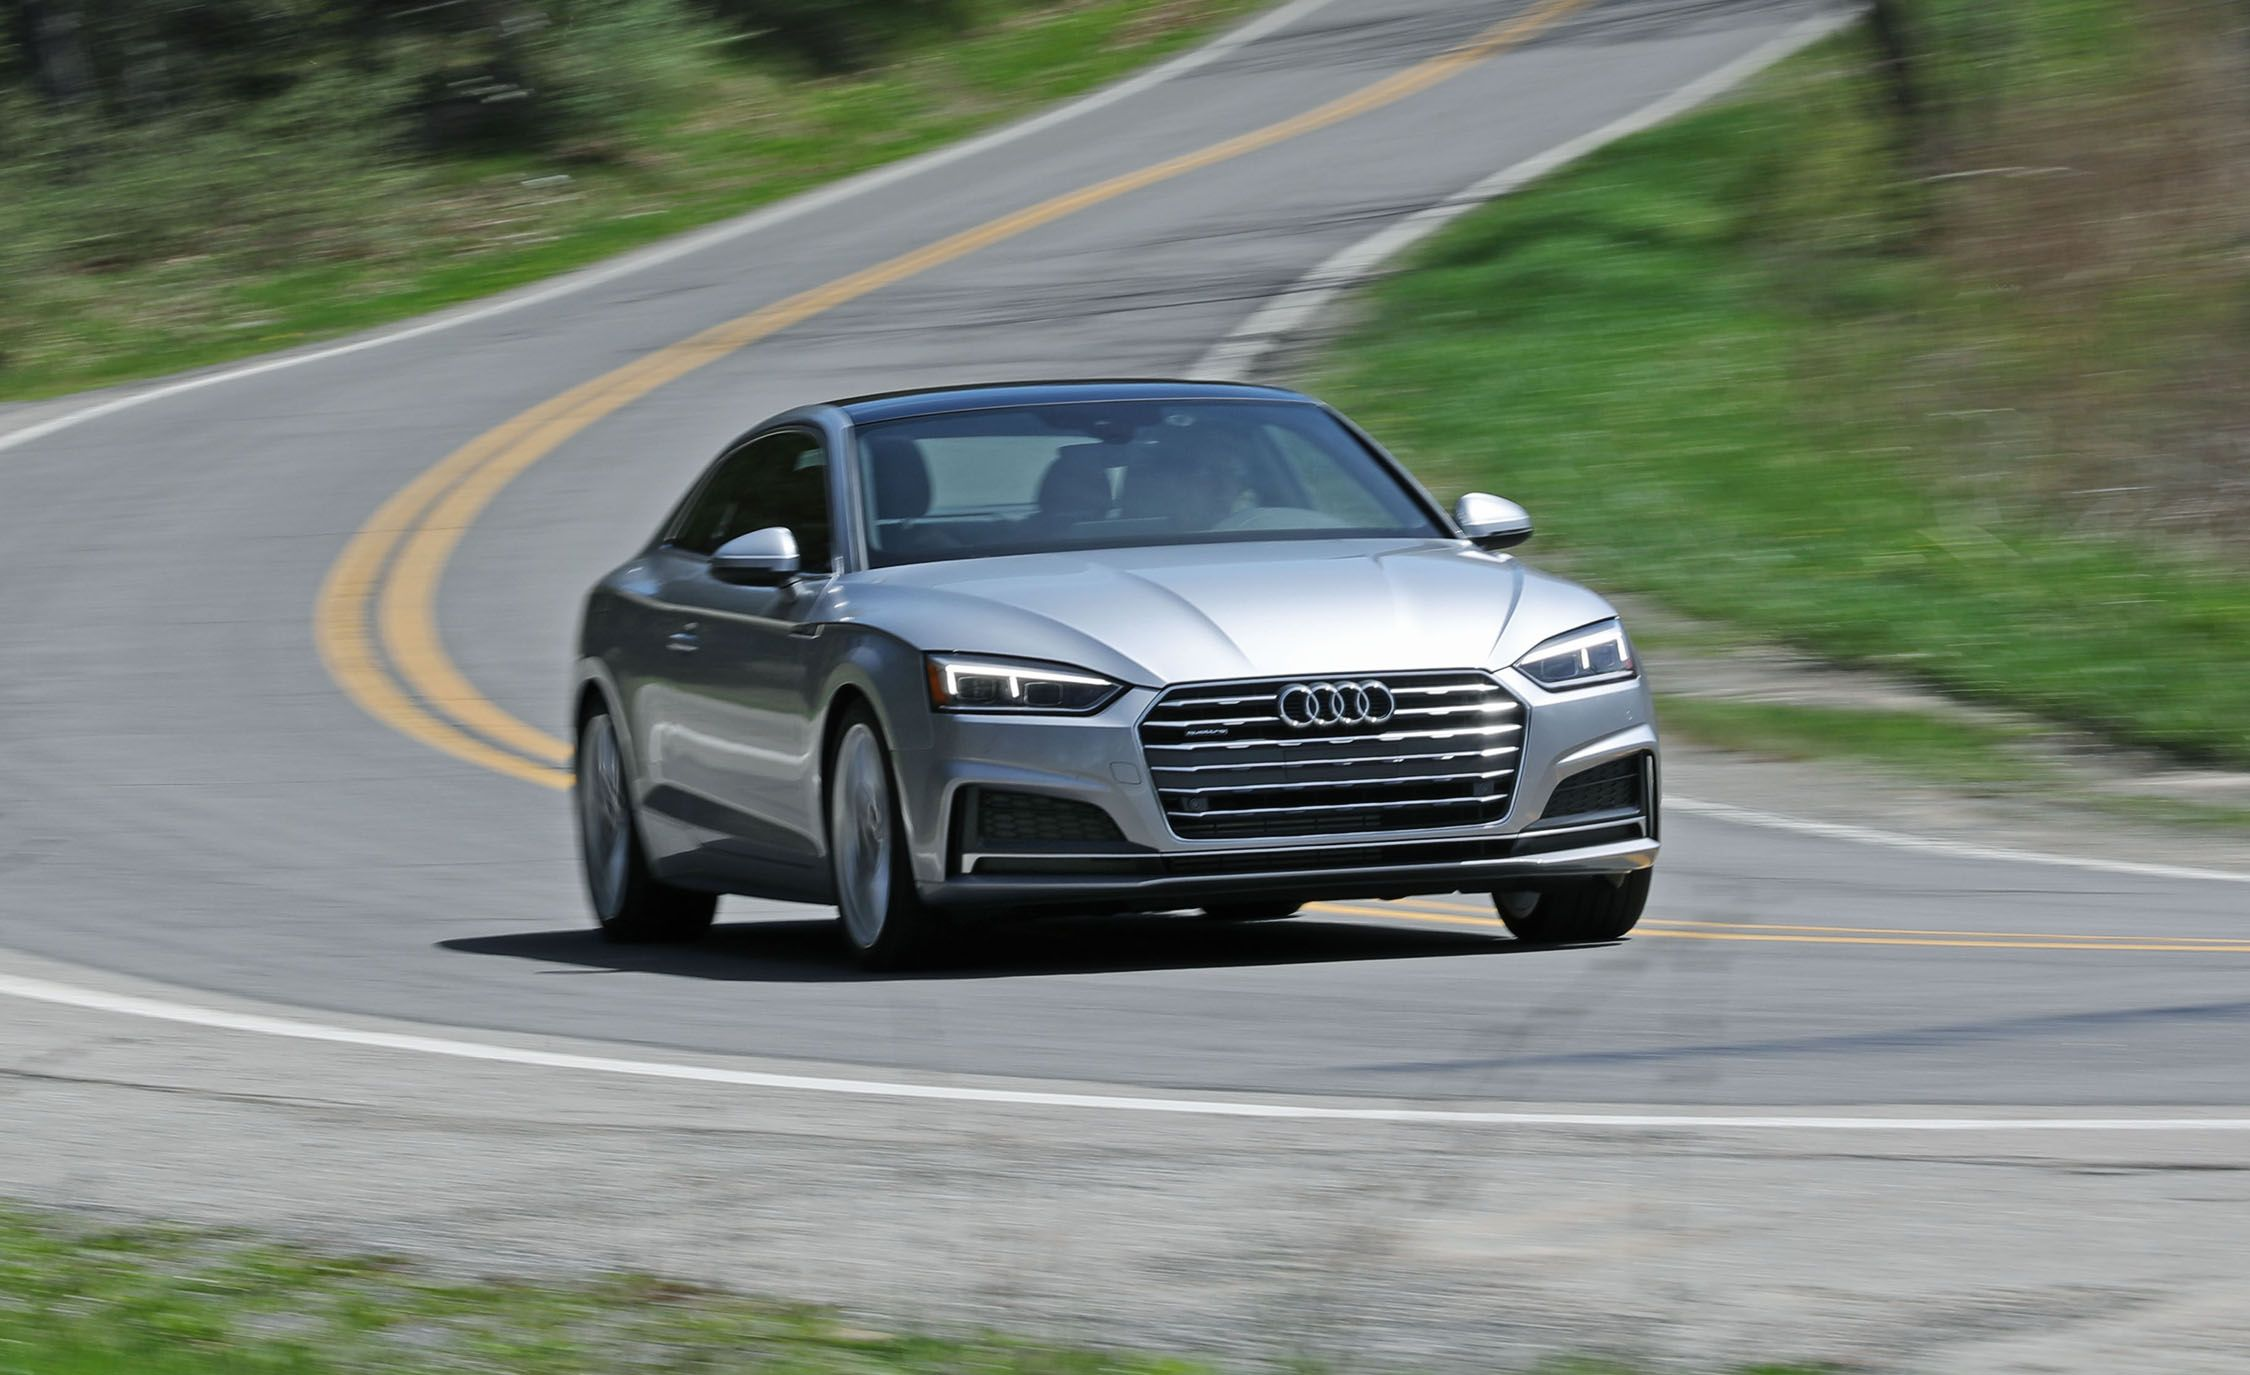 2018 Audi A5 2.0T Coupe Automatic